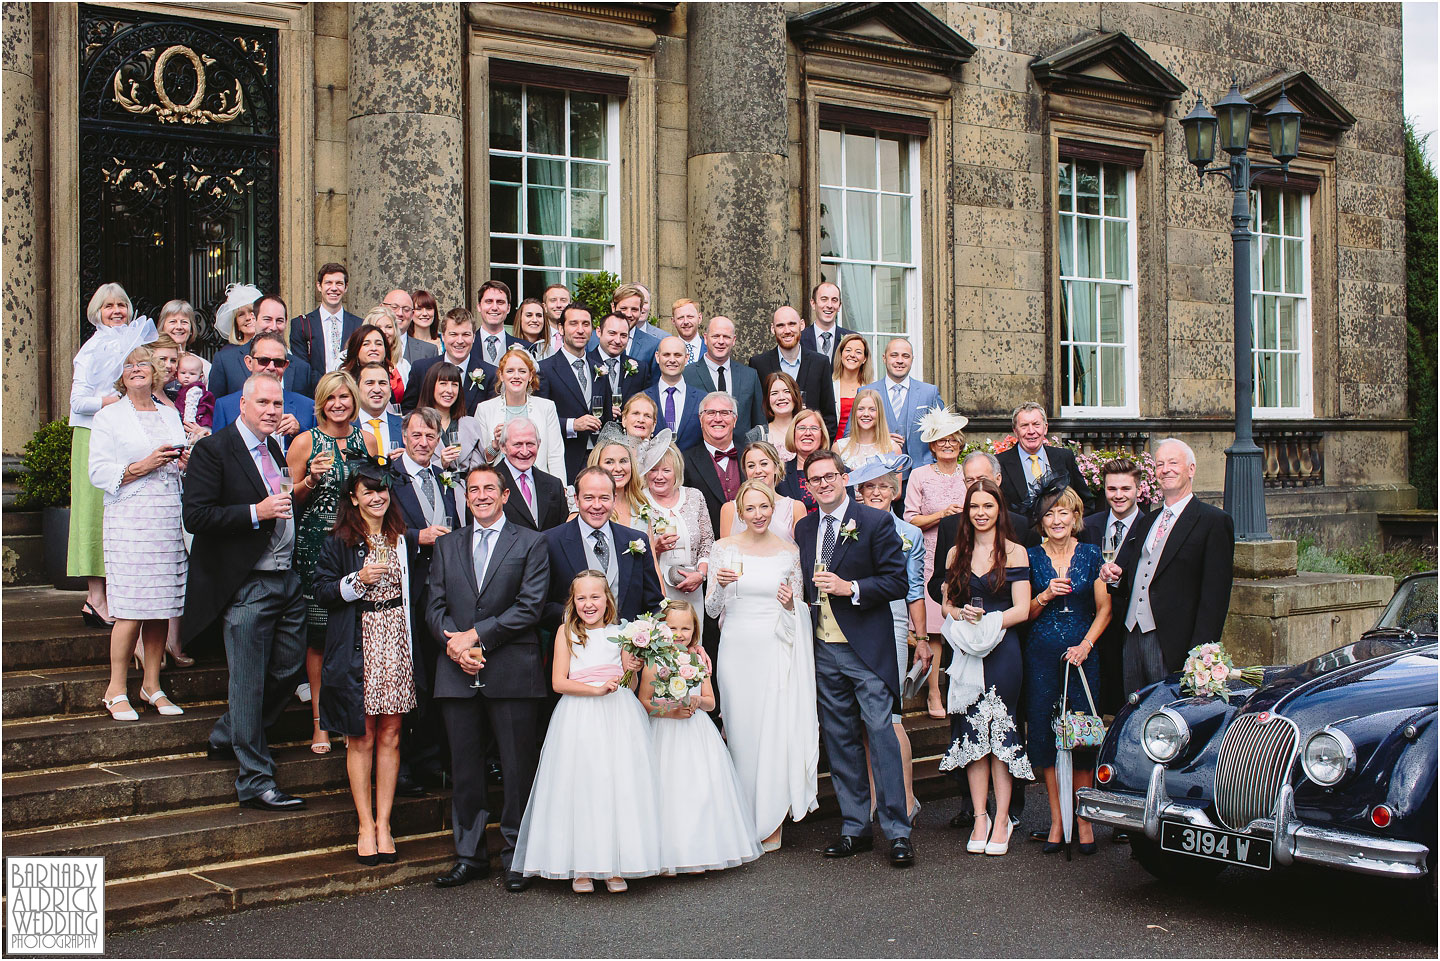 A Wedding group photograph of everyone on the stairs outside Denton Hall in Yorkshire